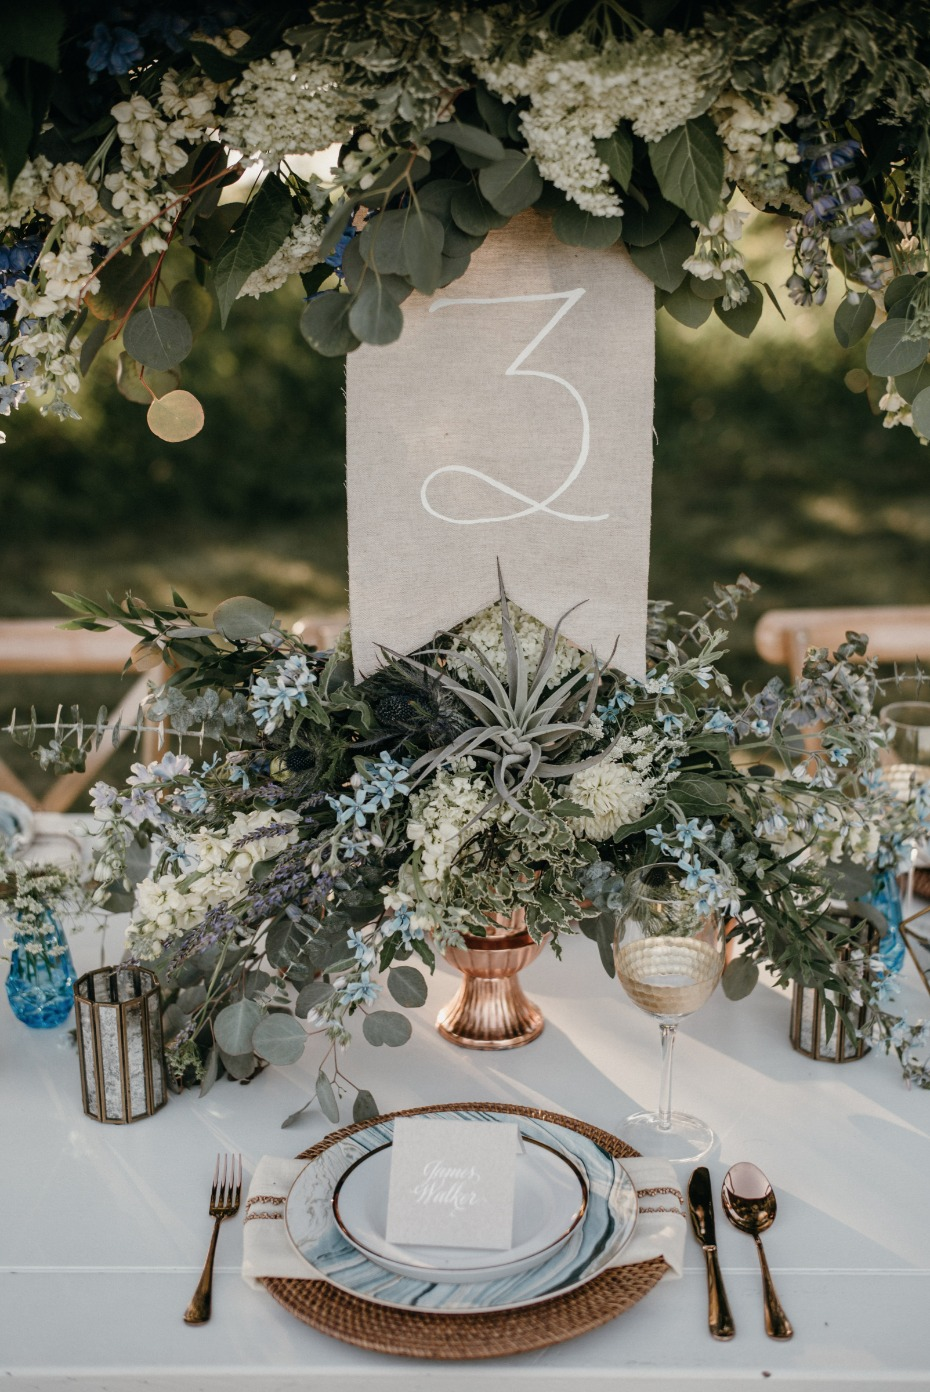 Beautiful table decor in blue, gold and white